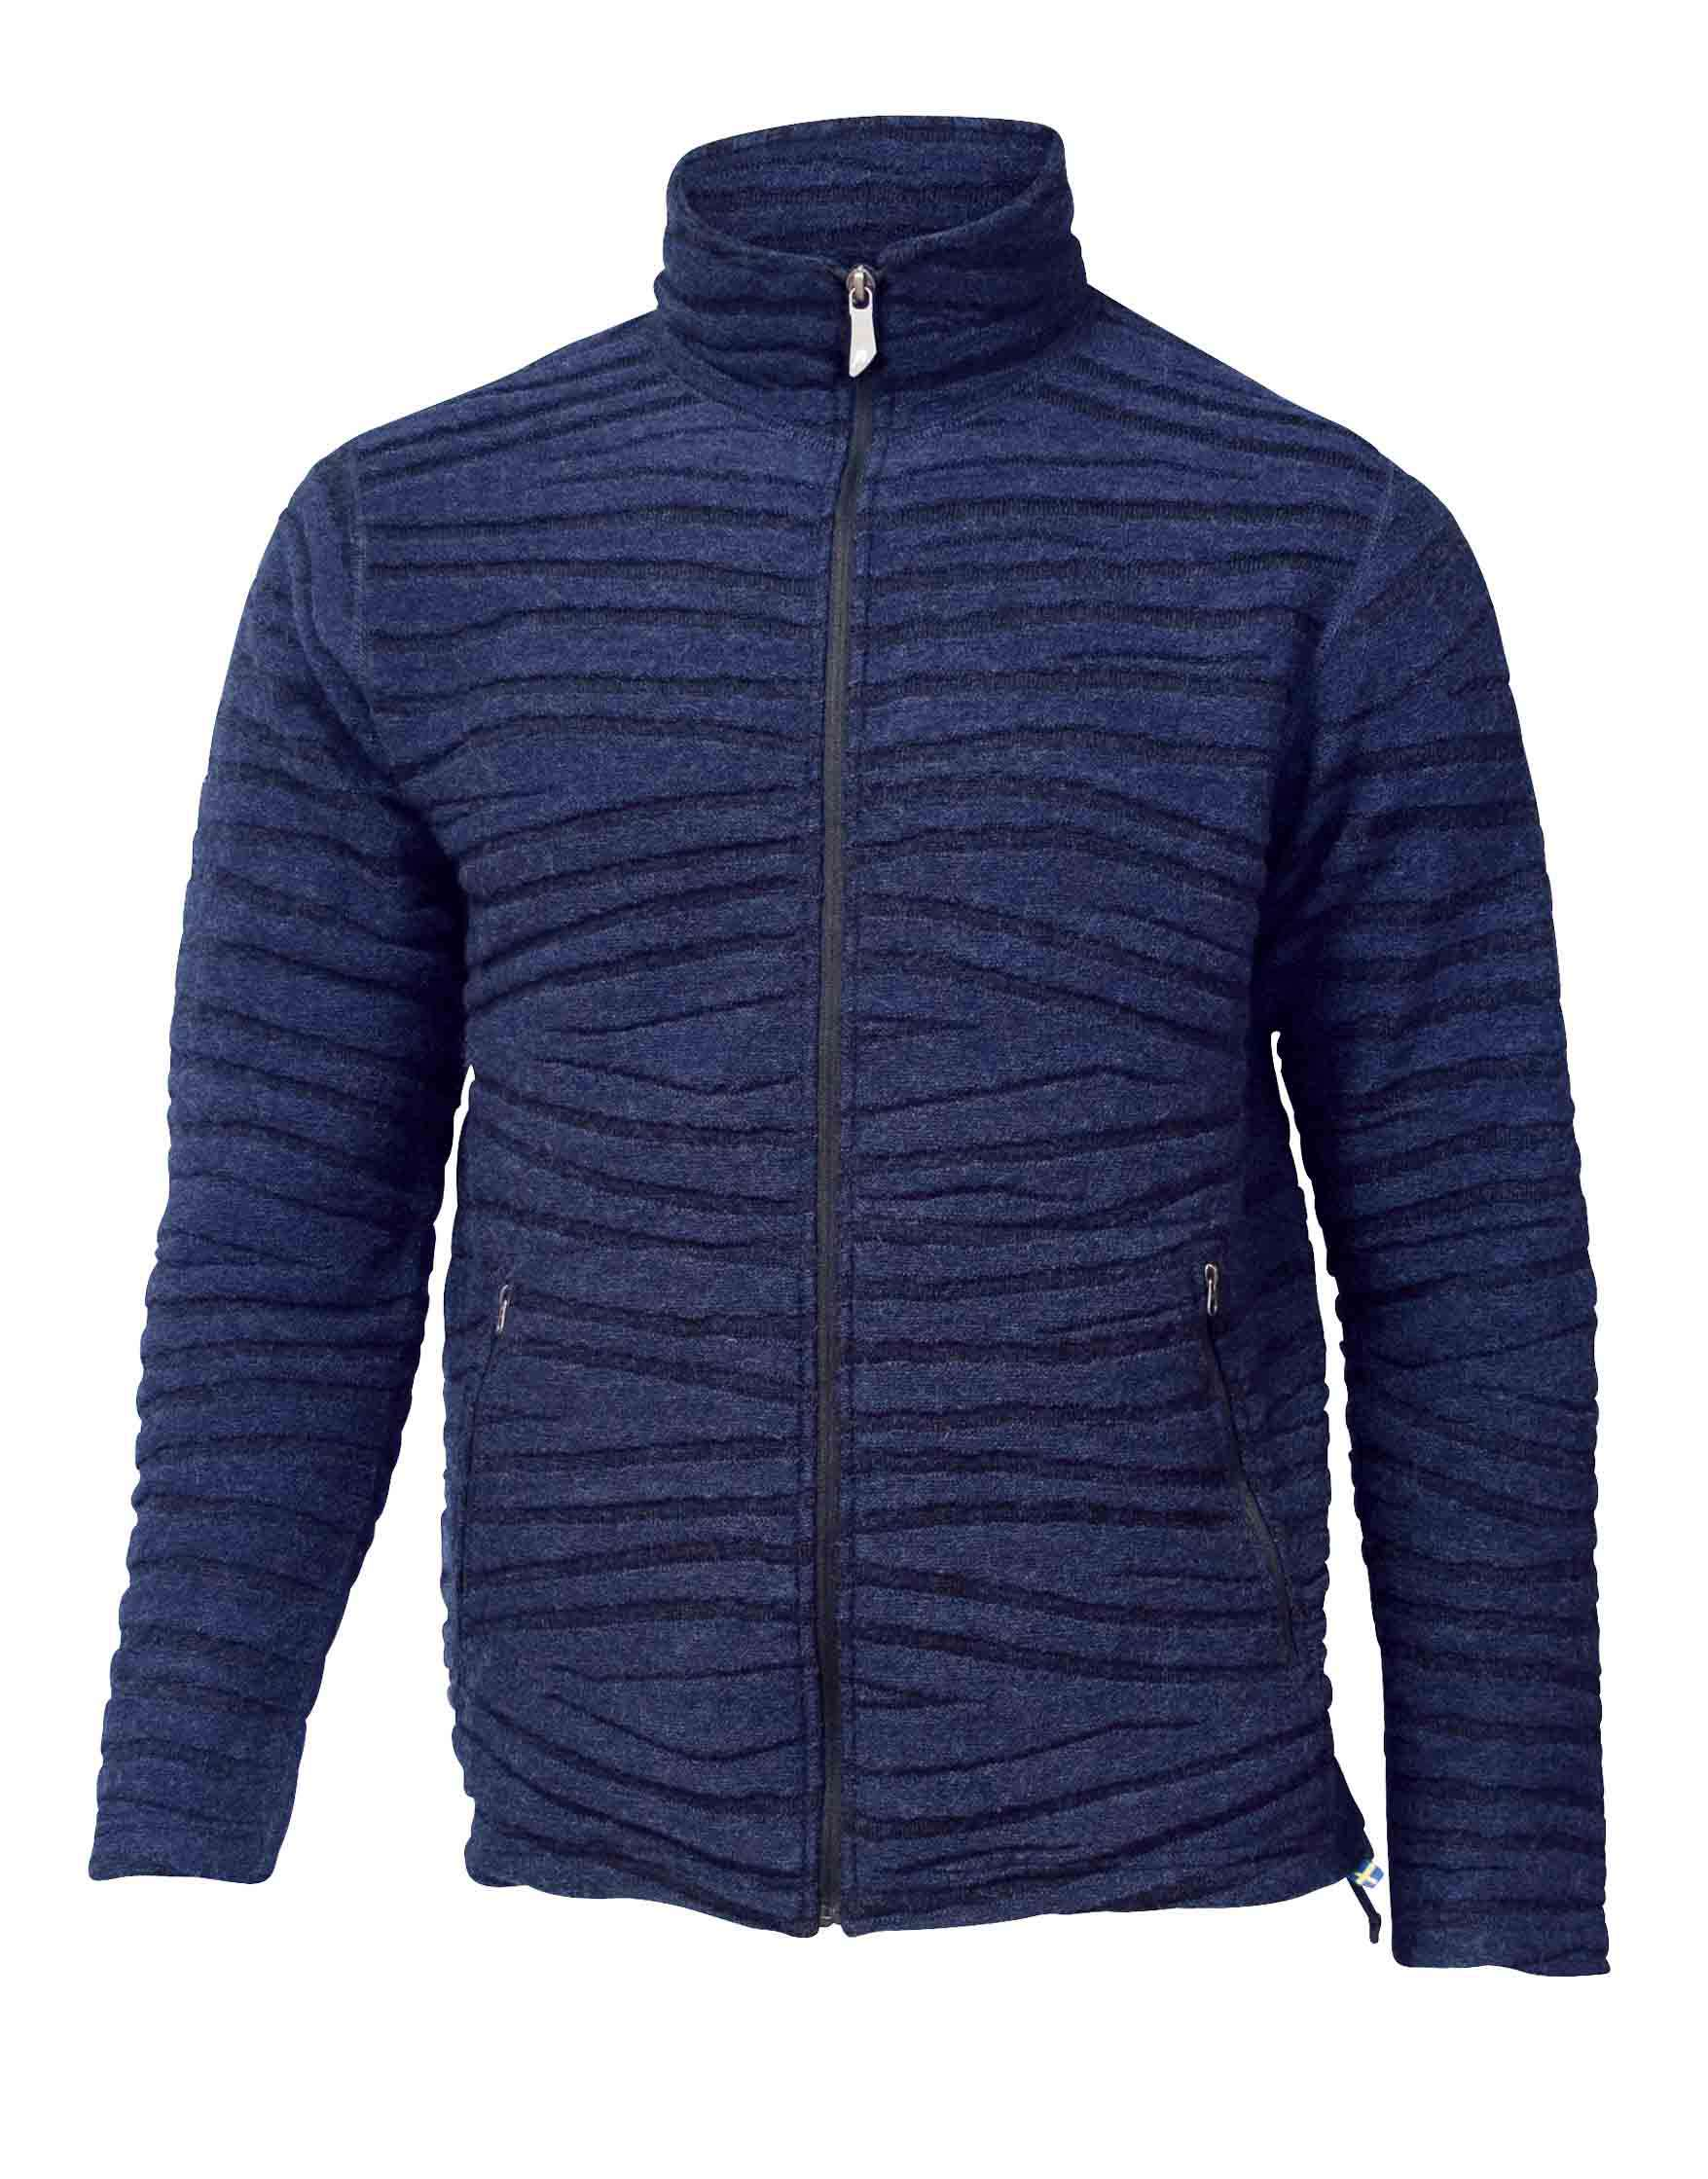 C En A Vesten Cardigan Wool Tencel Navy Wave M Xl Asterra